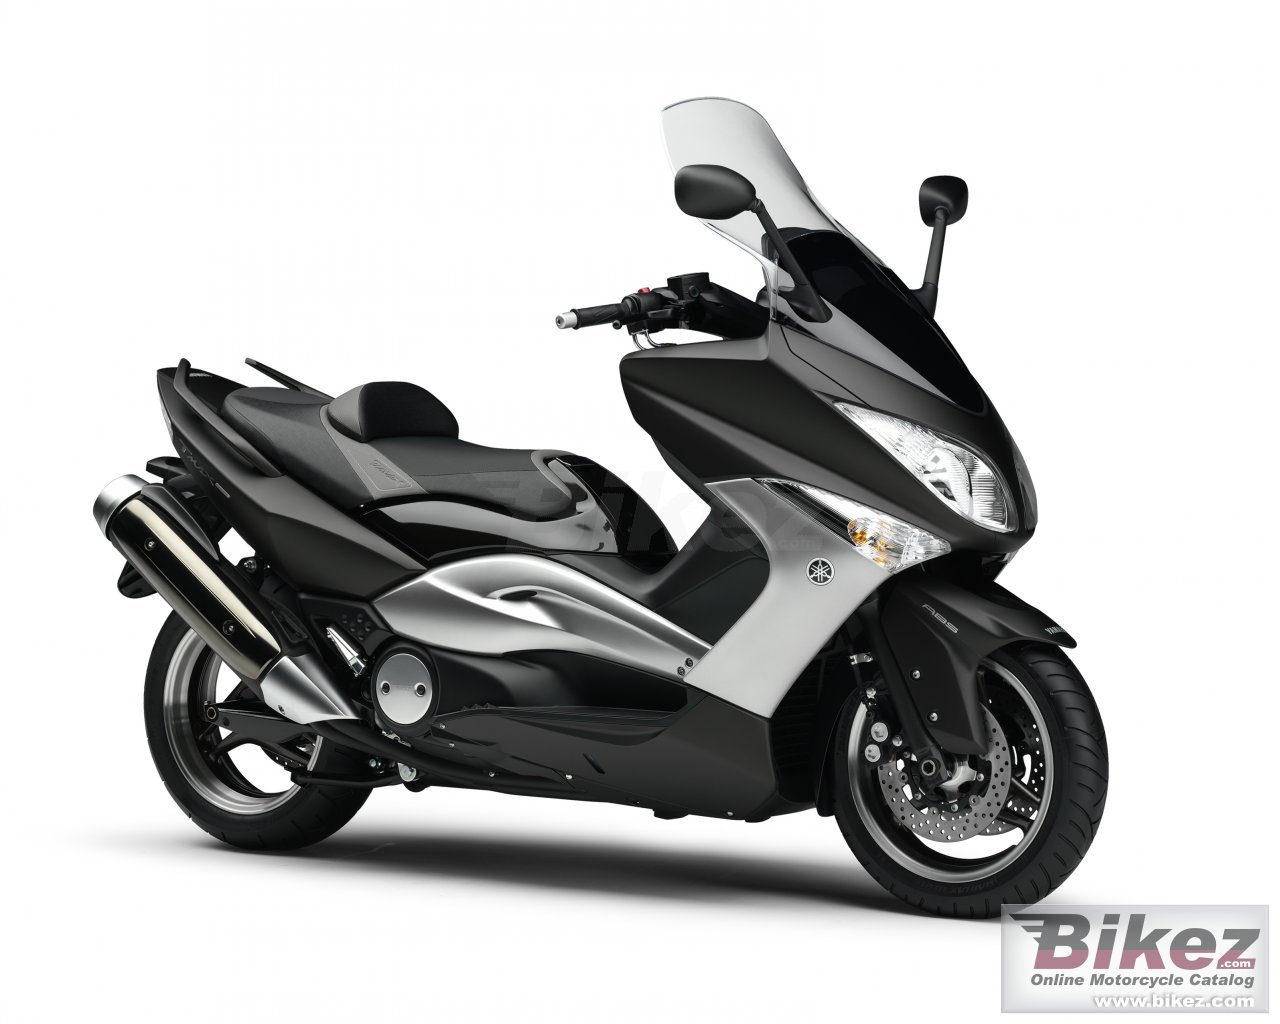 Big Yamaha tmax tech max abs picture and wallpaper from Bikez.com